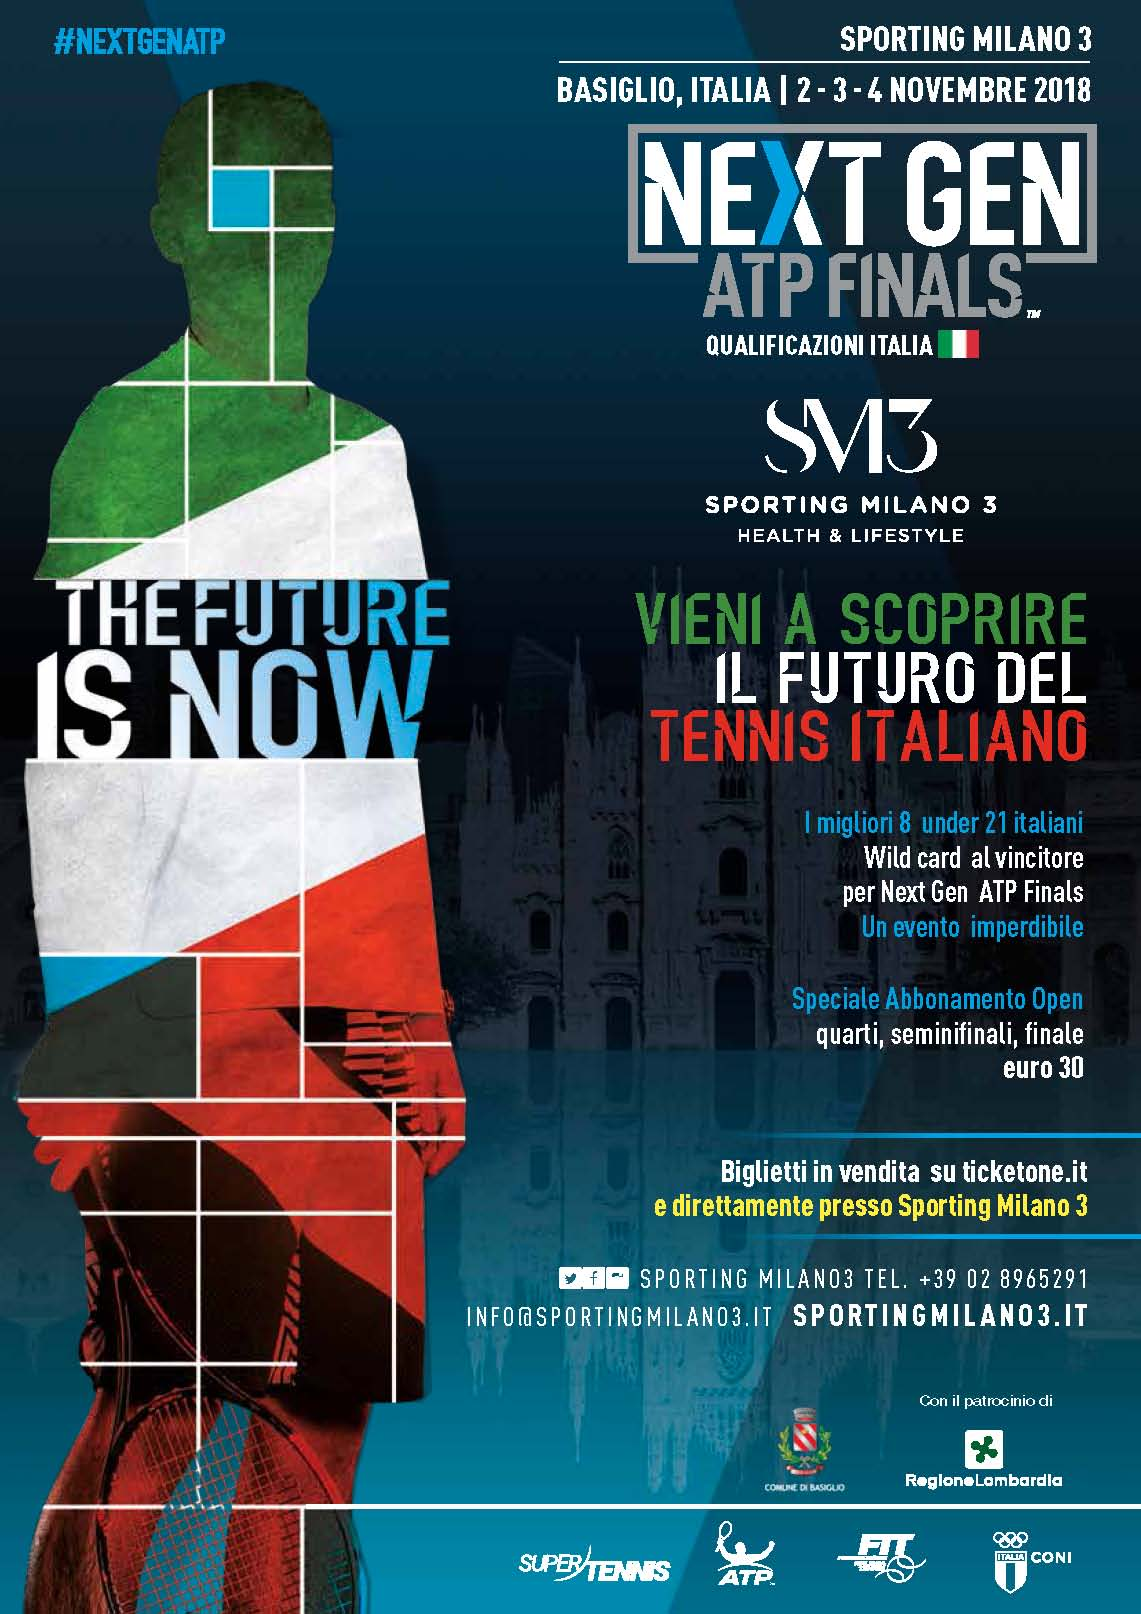 Next Gen Atp Finals 2018